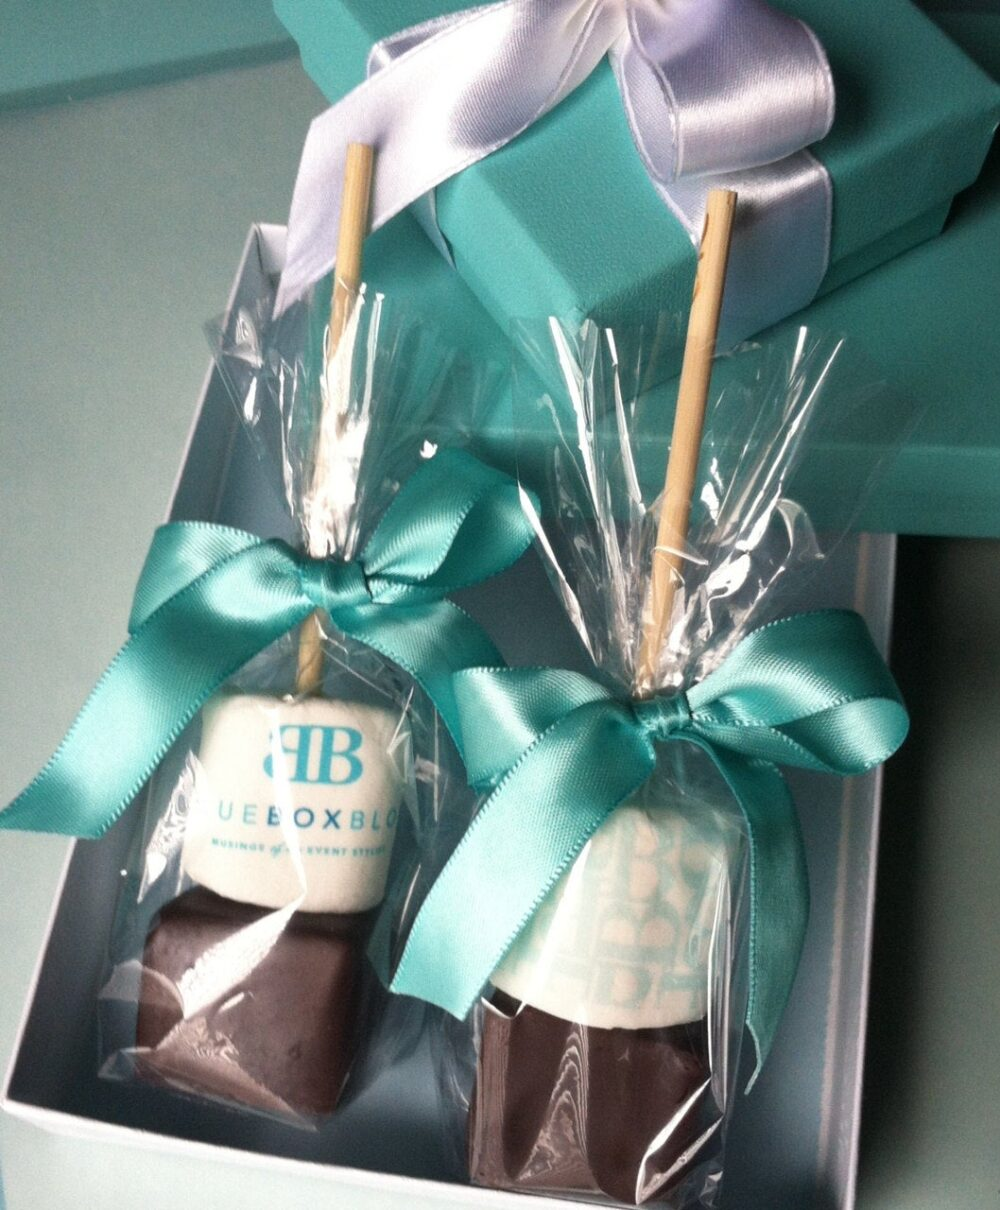 Hot Chocolate Wedding Favors. Unique Winter Wedding Favors. Robin Egg Blue. Set Of 12 With Customization